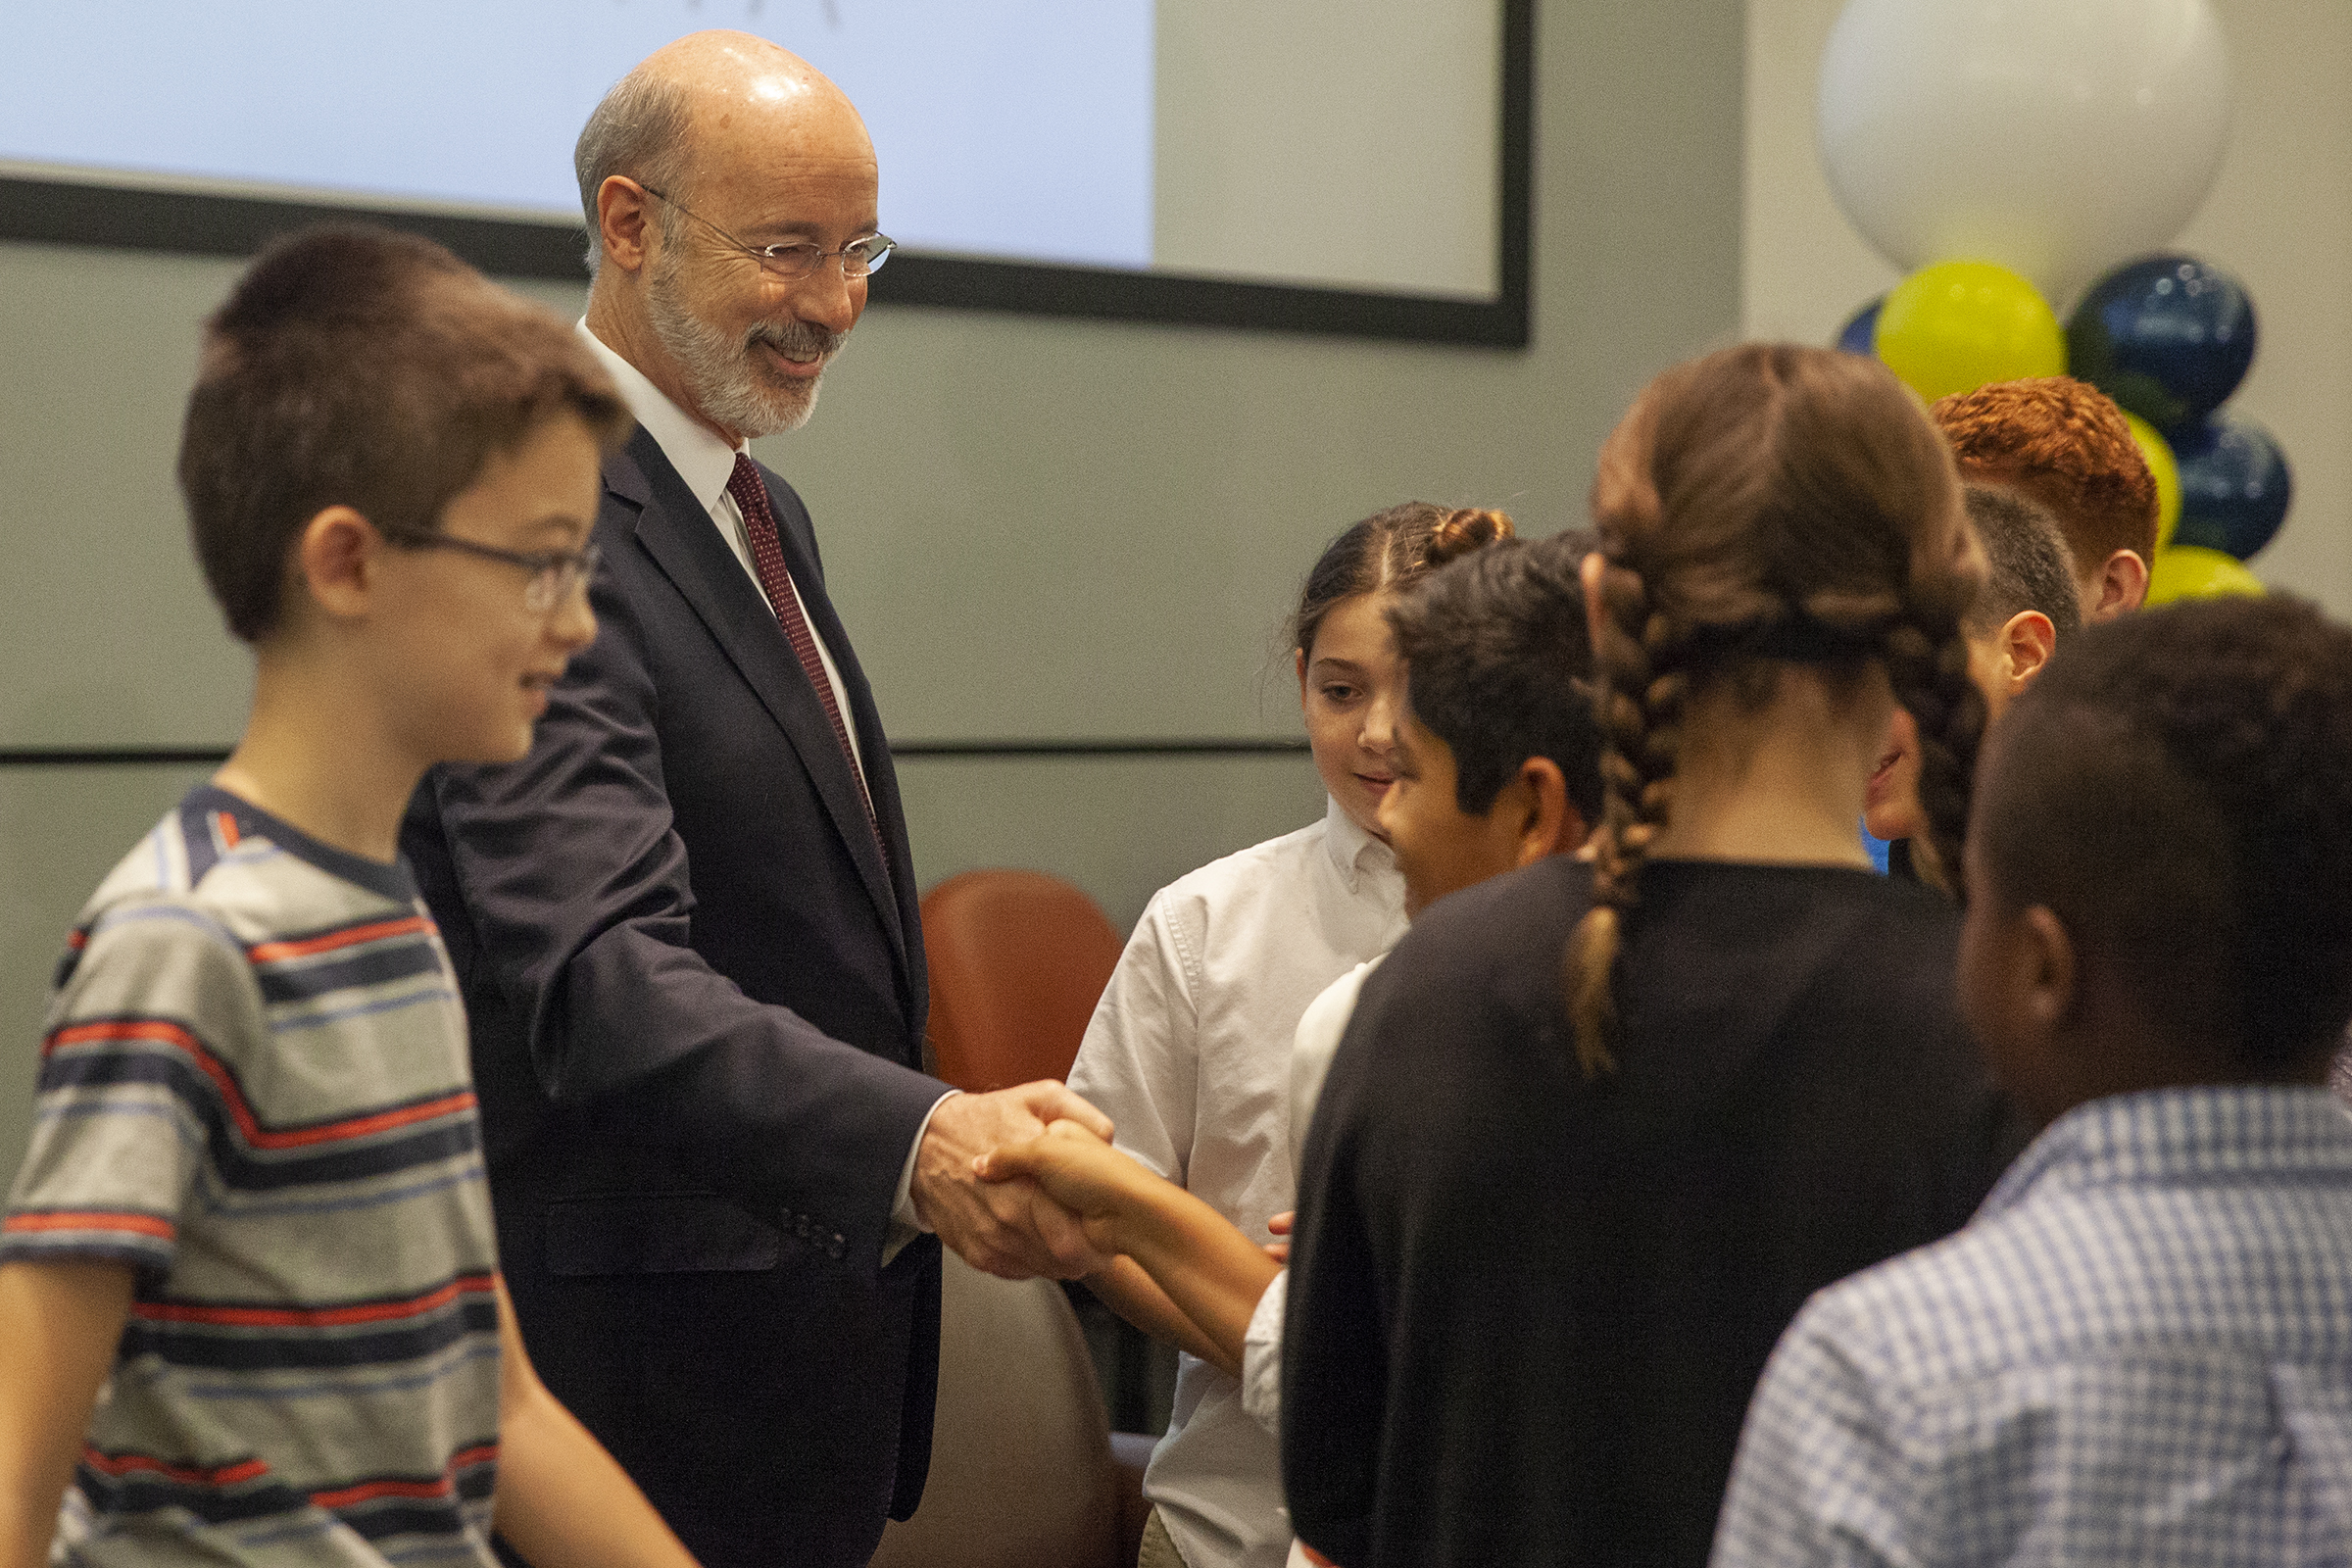 Gov. Wolf shakes hands with school children at the Philadelphia School District headquarters Oct. 10.